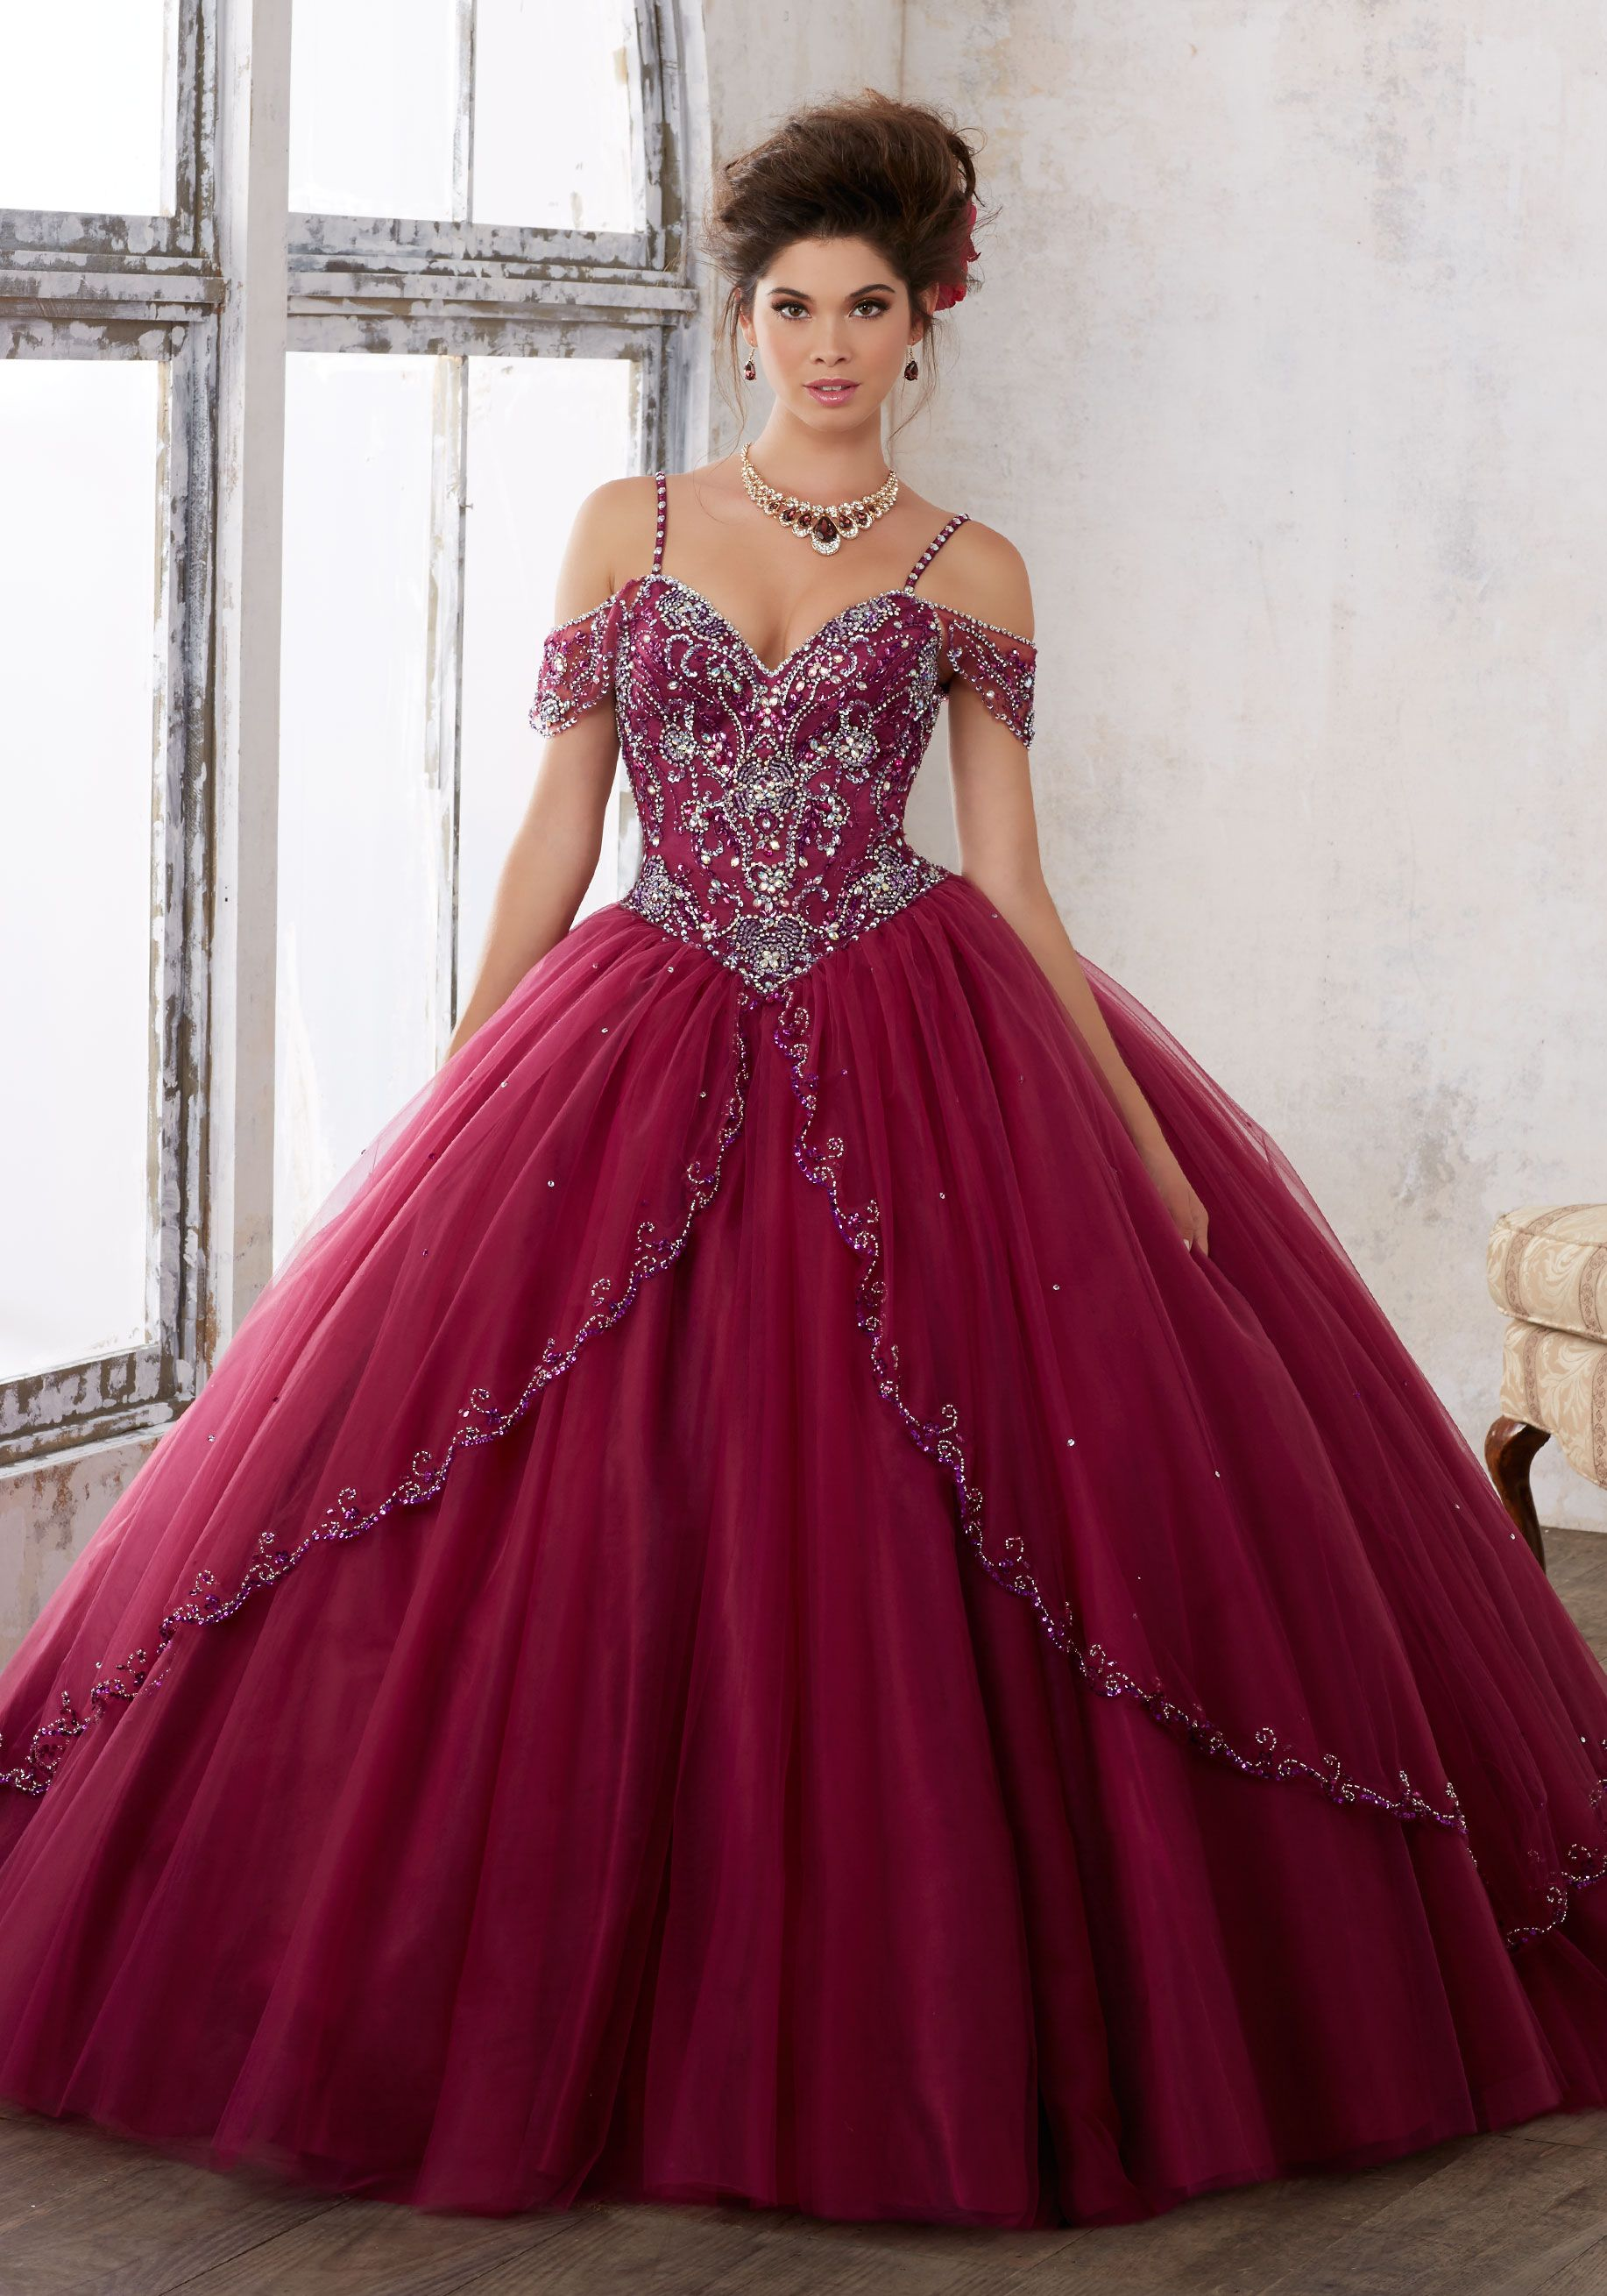 22a4210647 Morilee Quinceanera Dresses STYLE NUMBER  89135 Jeweled Beading on a Split  Front Tulle Ballgown Dramatic and Elegant